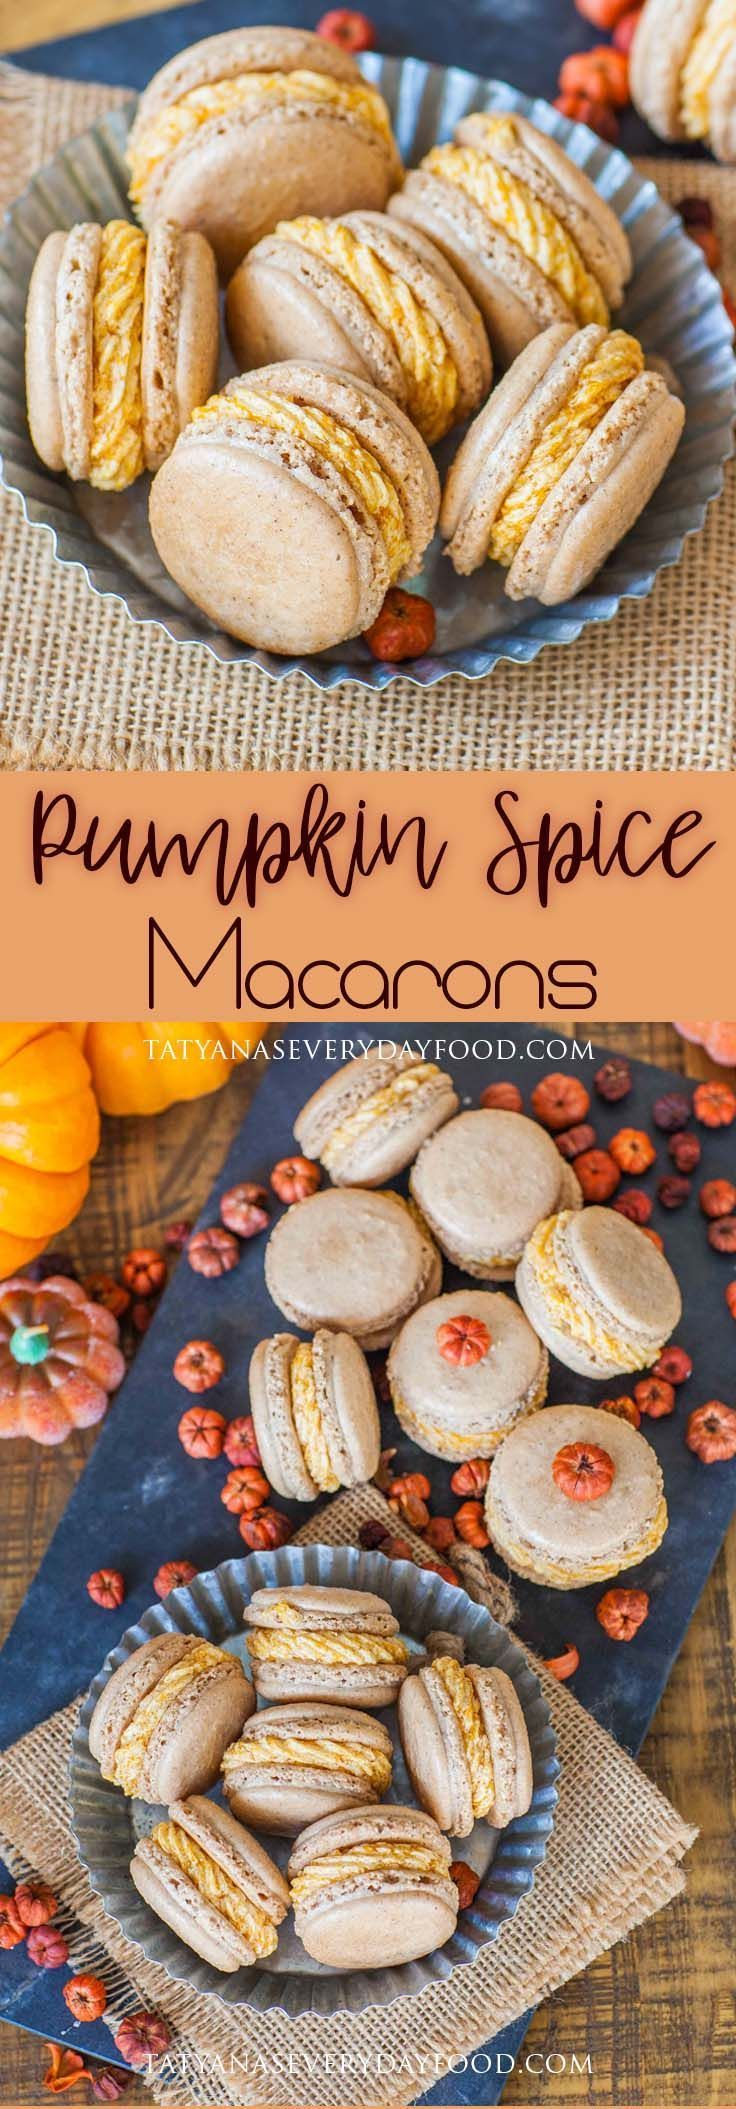 Pumpkin Spice Macarons - Tatyanas Everyday Food